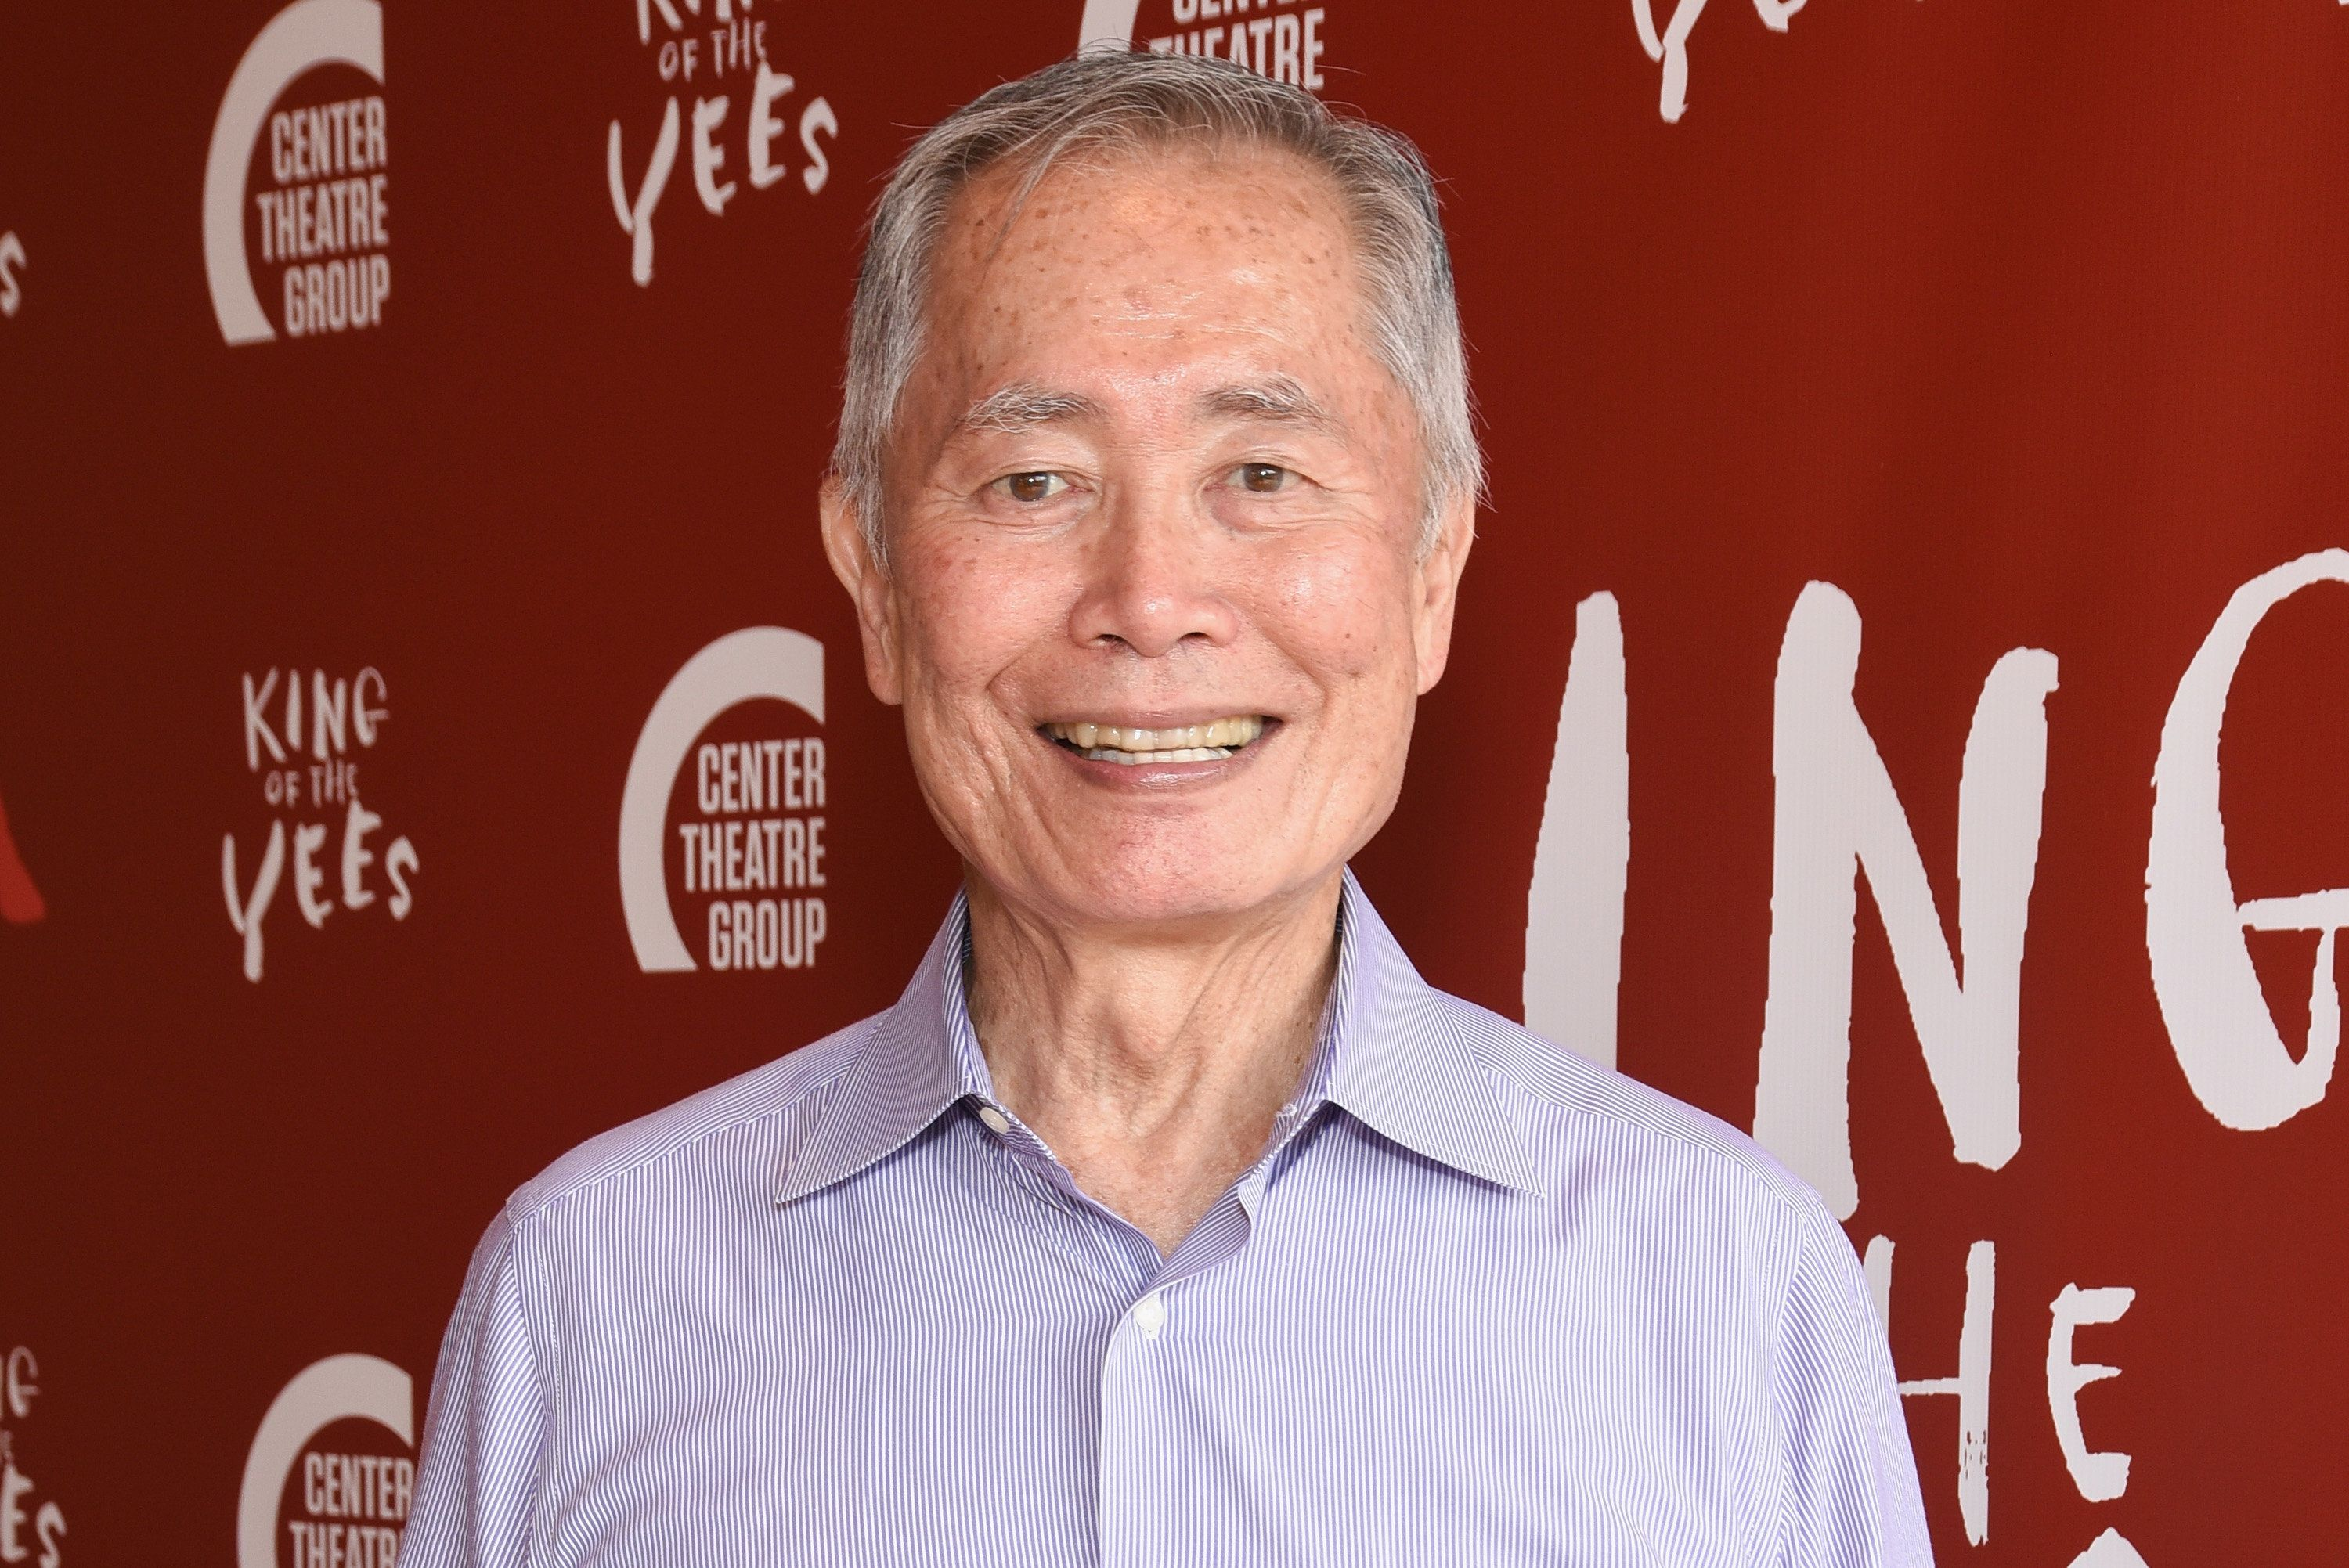 CULVER CITY, CA - JULY 16:  George Takei attends opening night of 'King Of The Yees' at Kirk Douglas Theatre on July 16, 2017 in Culver City, California.  (Photo by Tara Ziemba/FilmMagic)